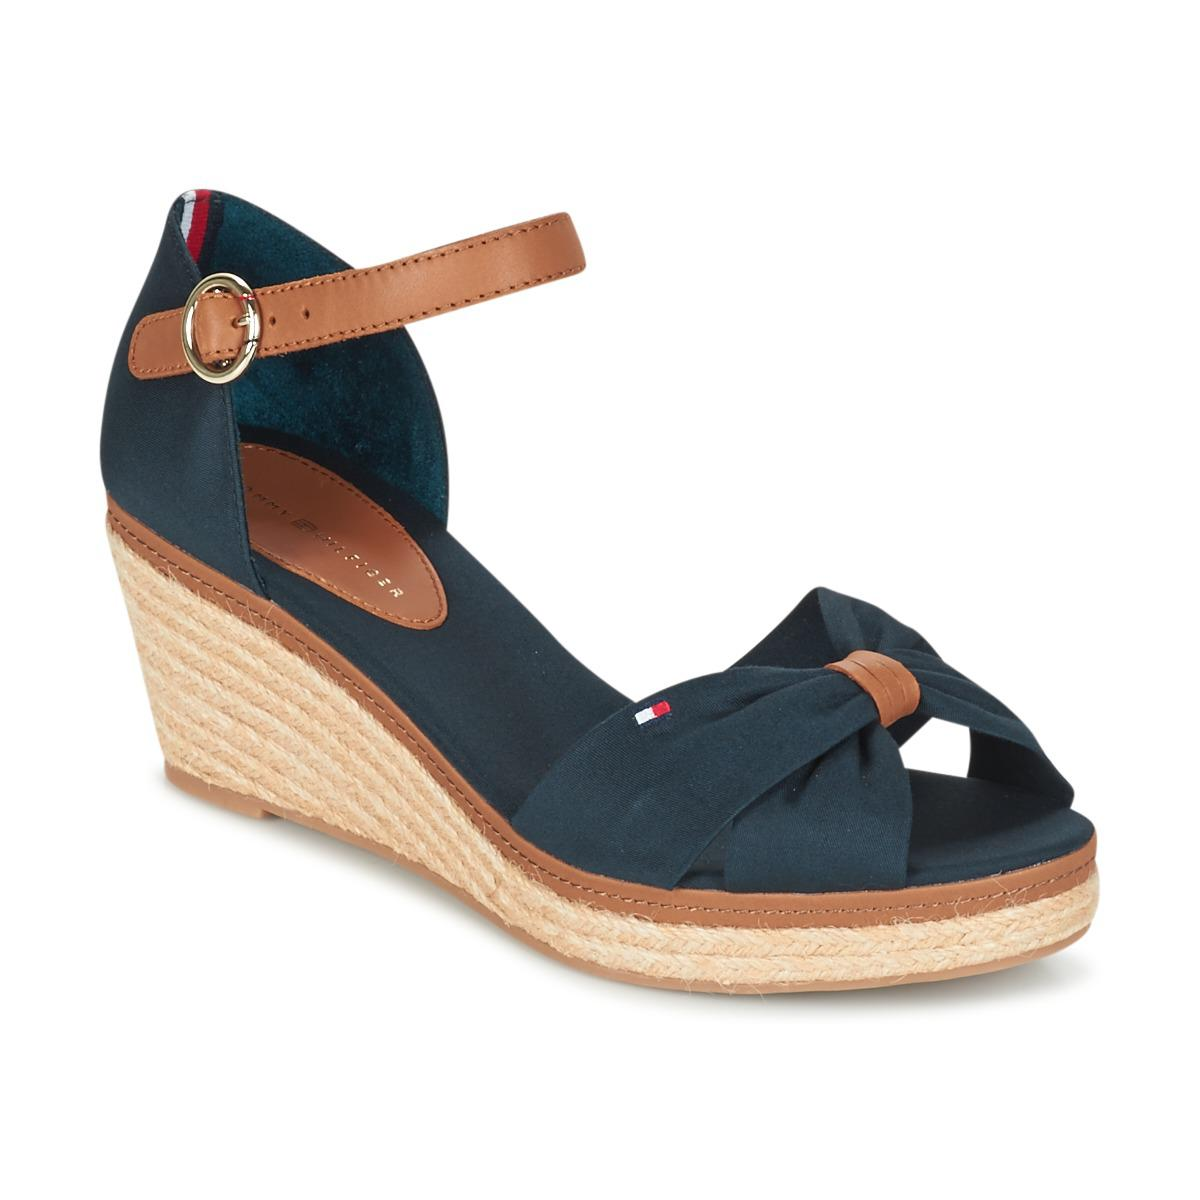 80a87d3e3a52 Tommy Hilfiger Elba 40d Women s Sandals In Blue in Blue - Save ...